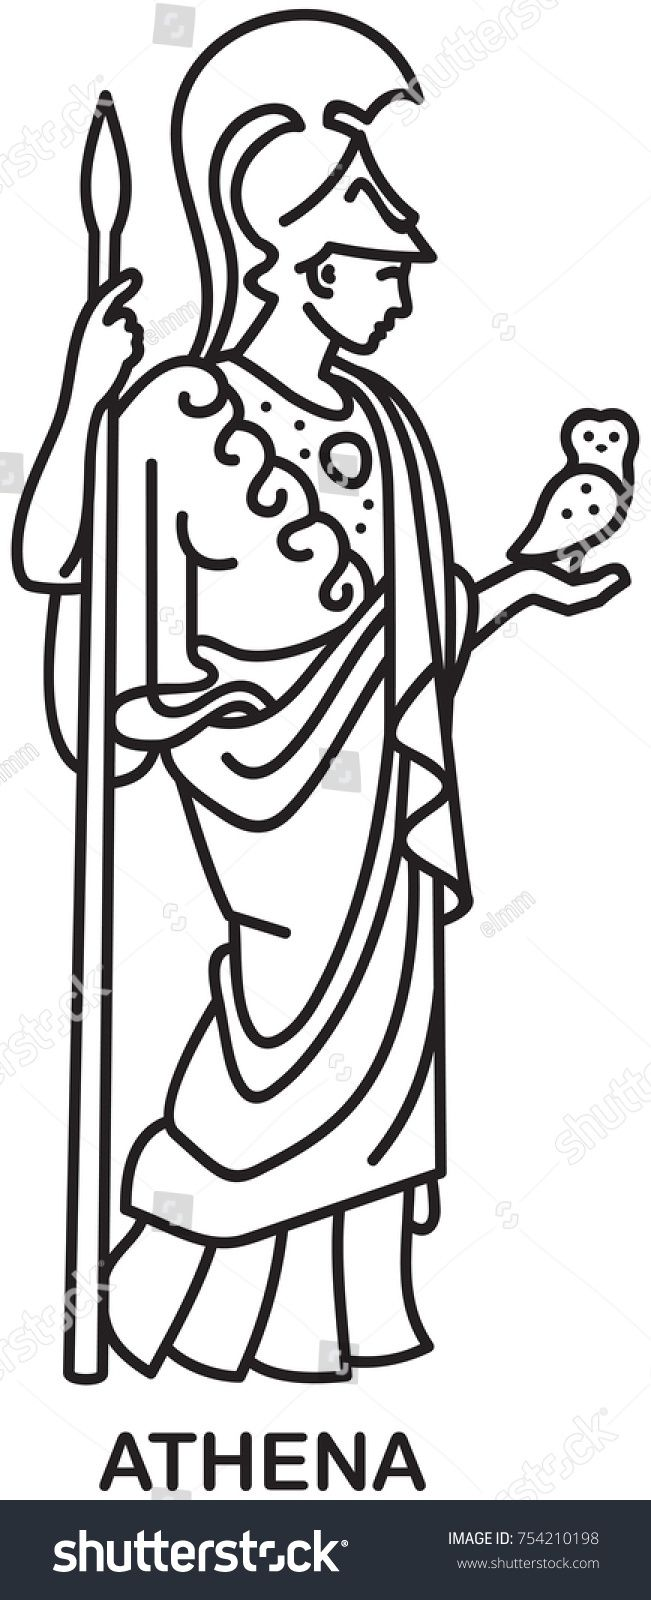 Athena pictures clipart picture download Athena Clipart (97+ images in Collection) Page 2 picture download